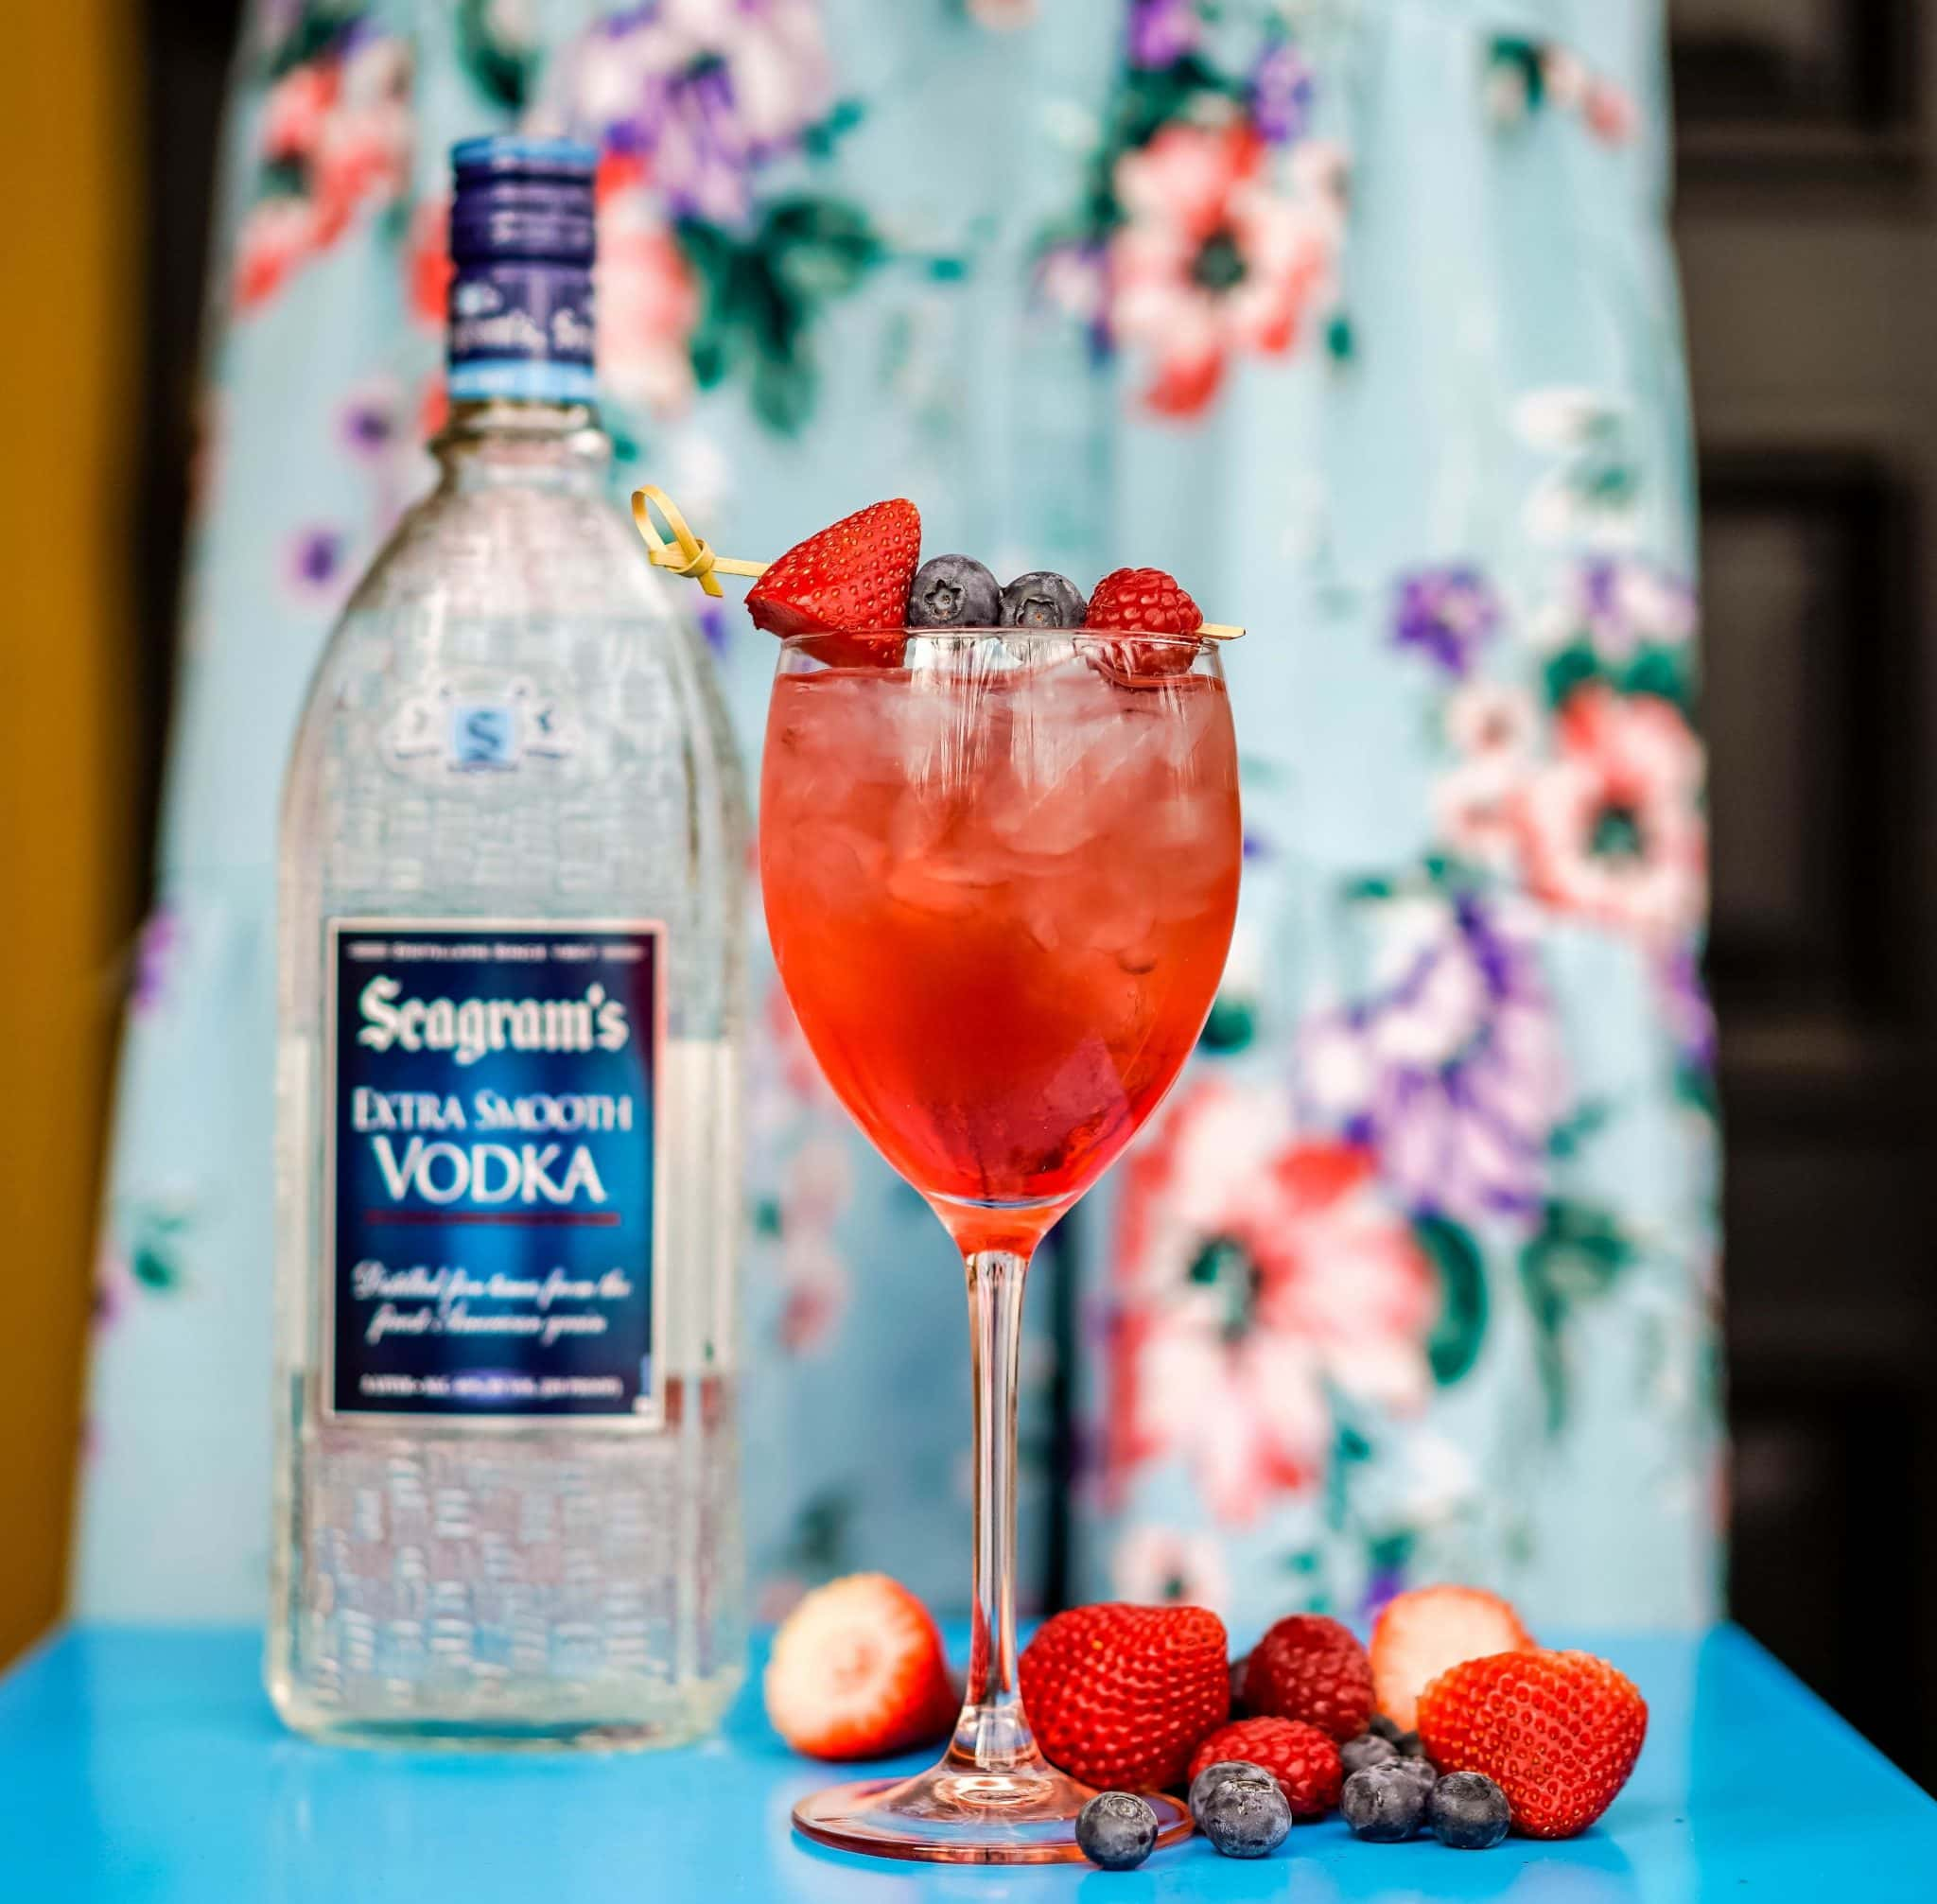 Seagram's Extra Smooth Berry Kombucha